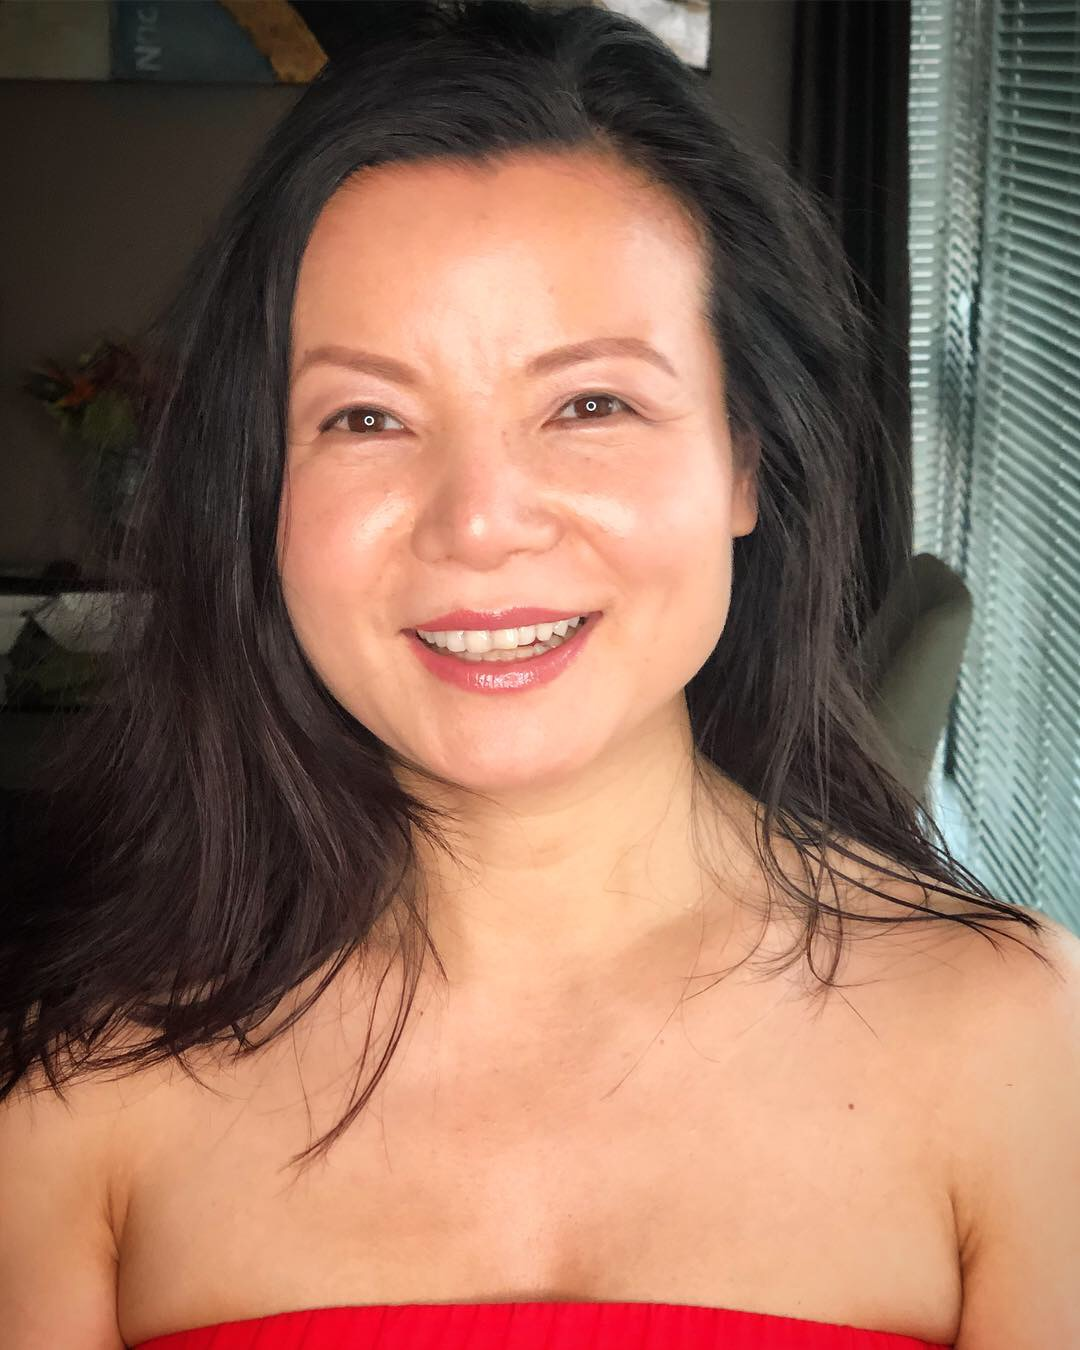 Sherry Zhu-Anderson - After